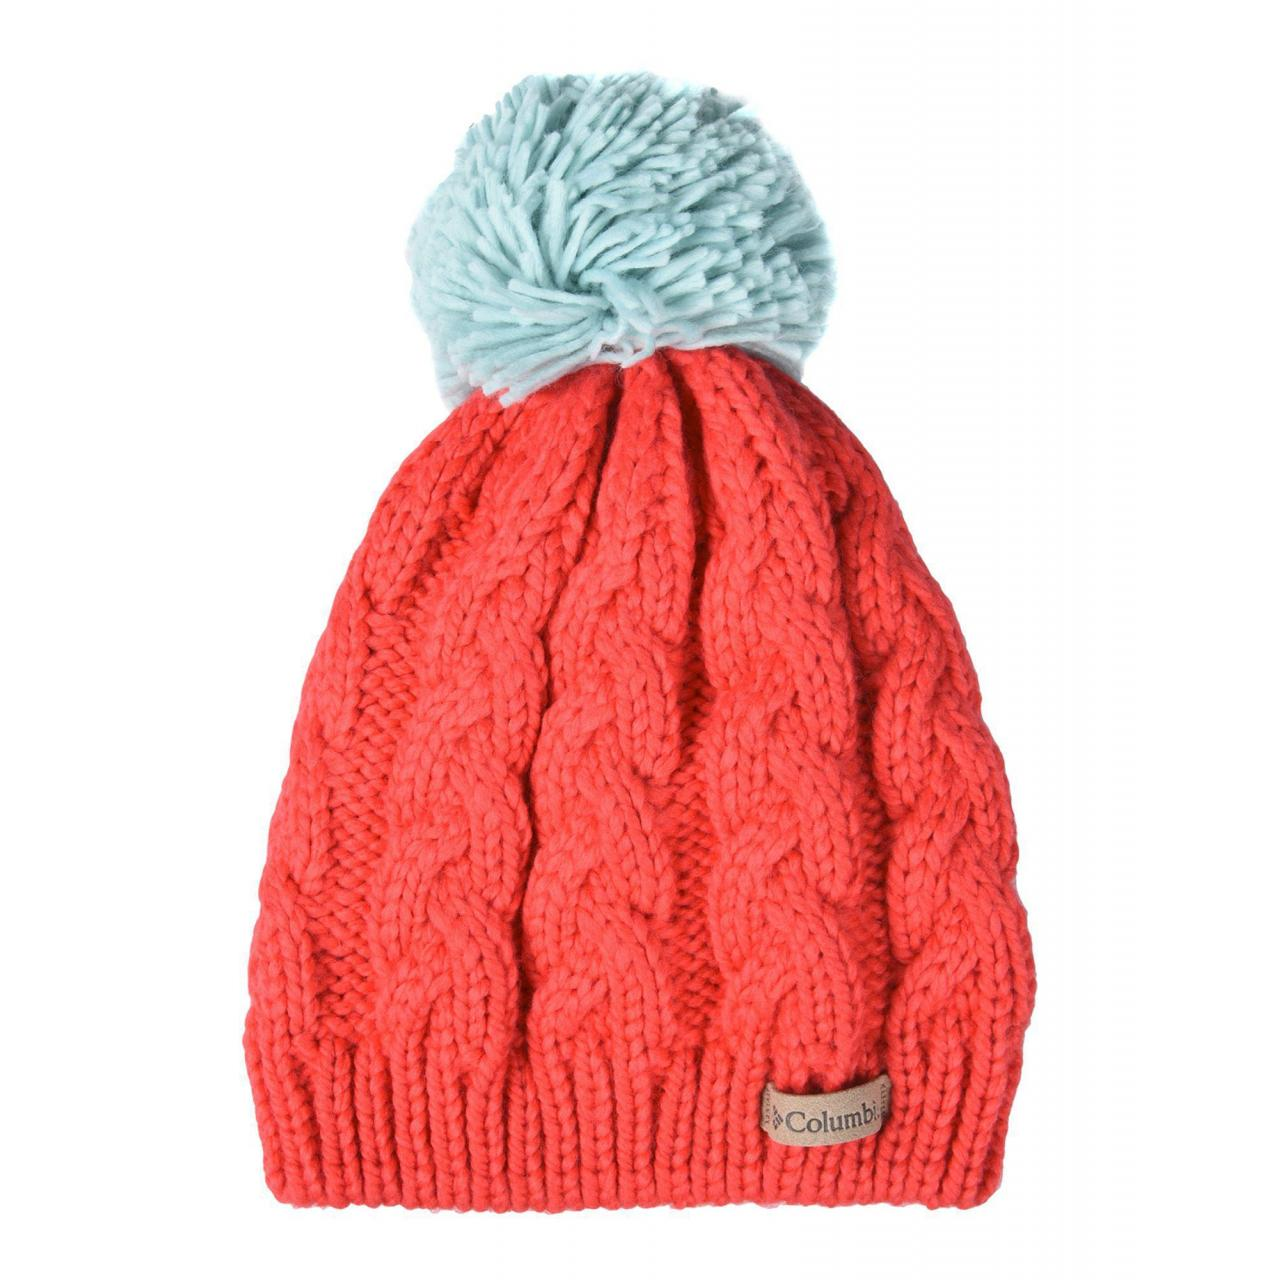 COLUMBIA women Accessories Hats Coral,columbia toddler jacket sale,reliable quality